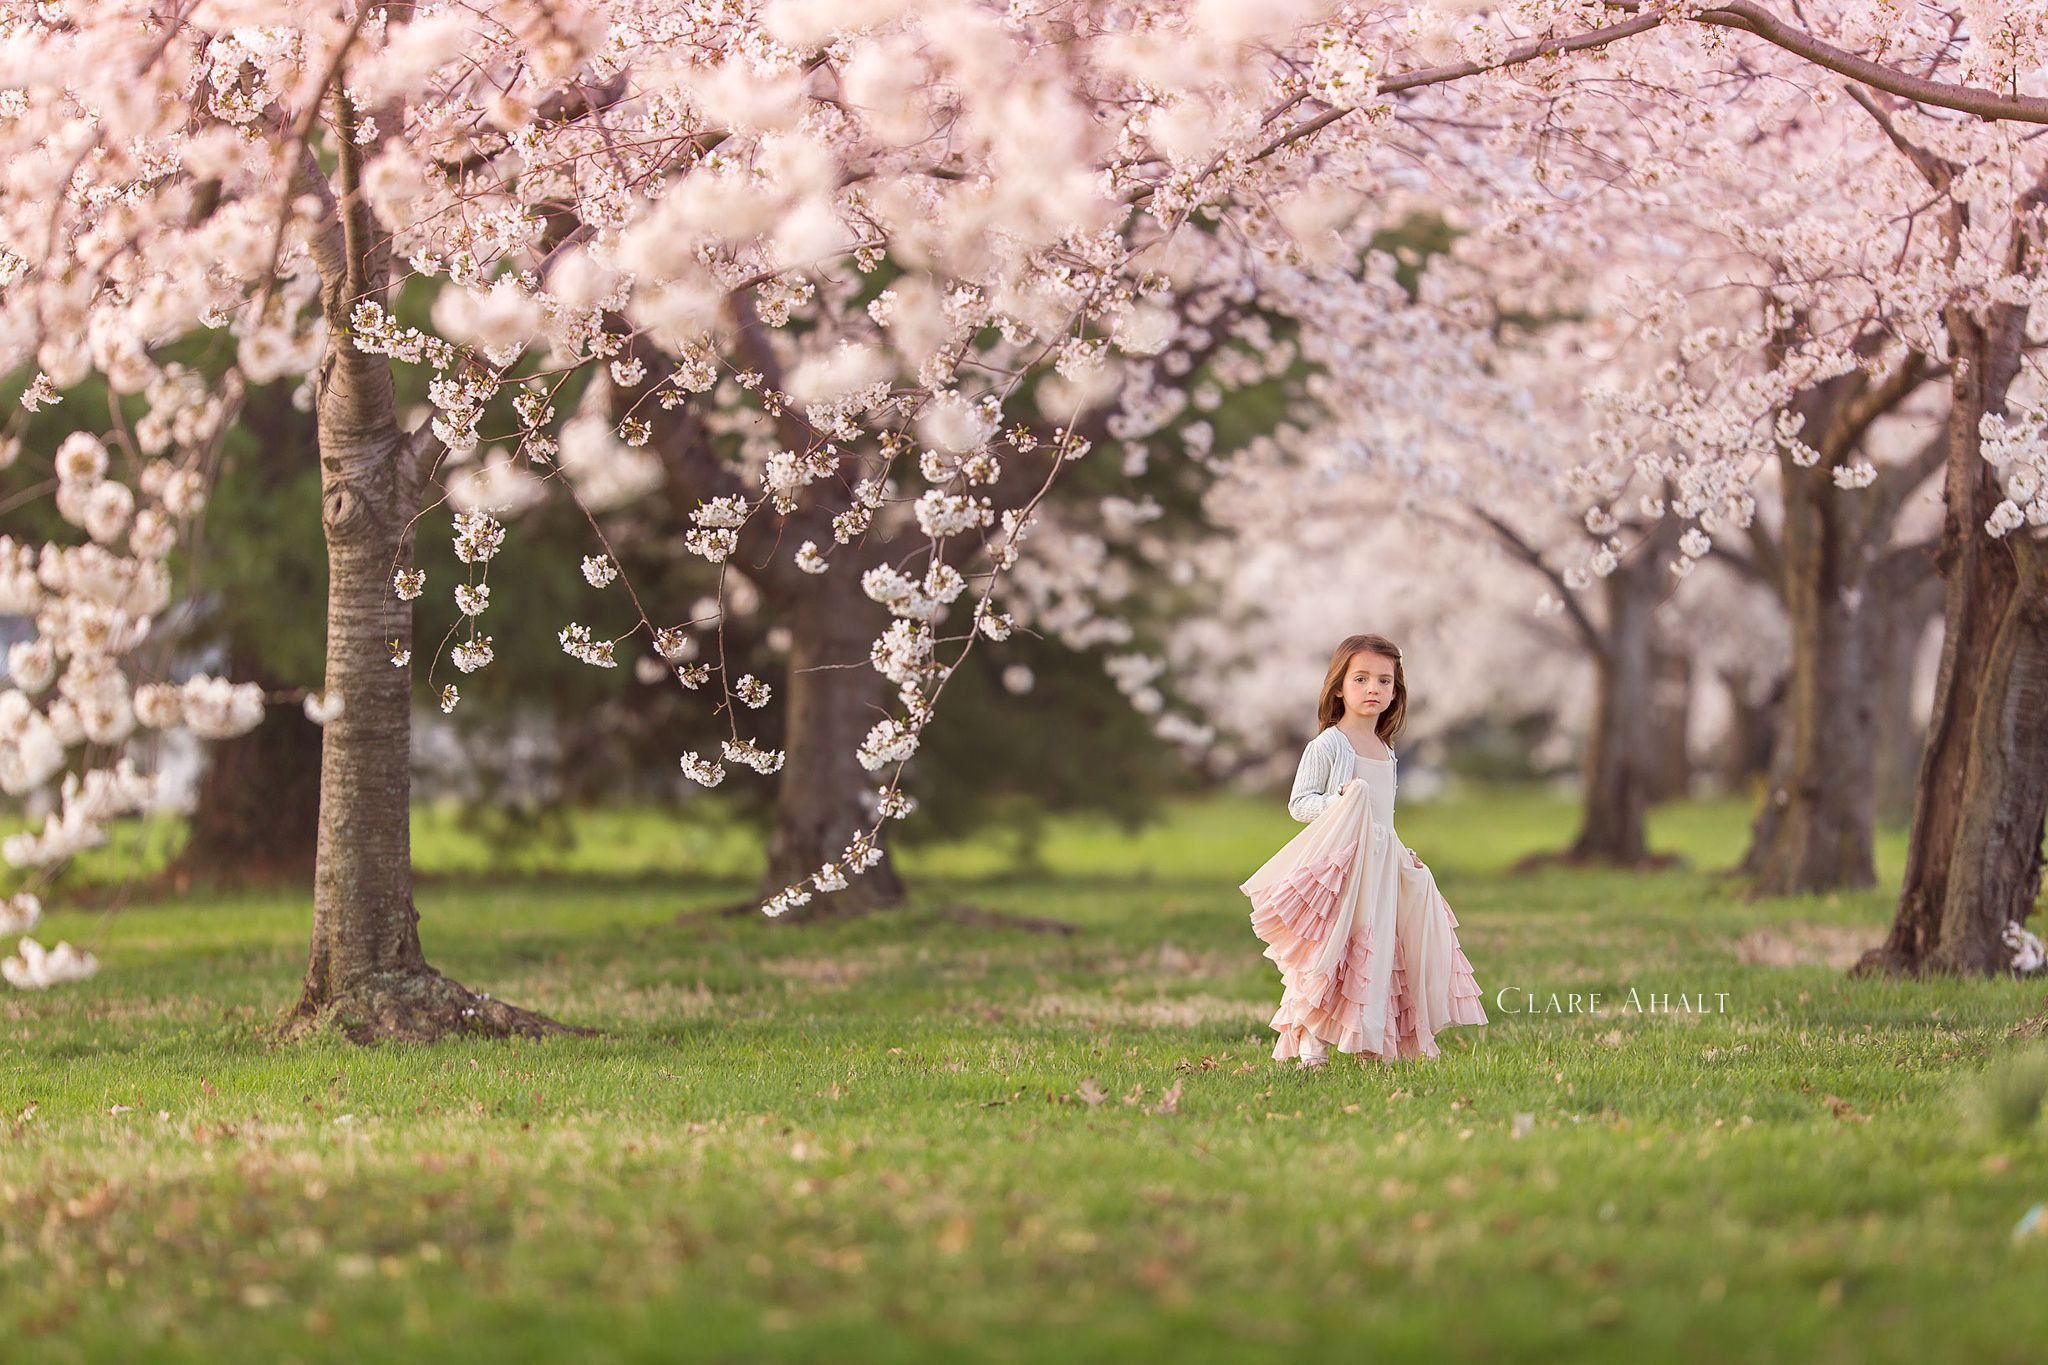 Cherry Blossoms Spring Pictures Cherry Blossom Pictures Spring Photography